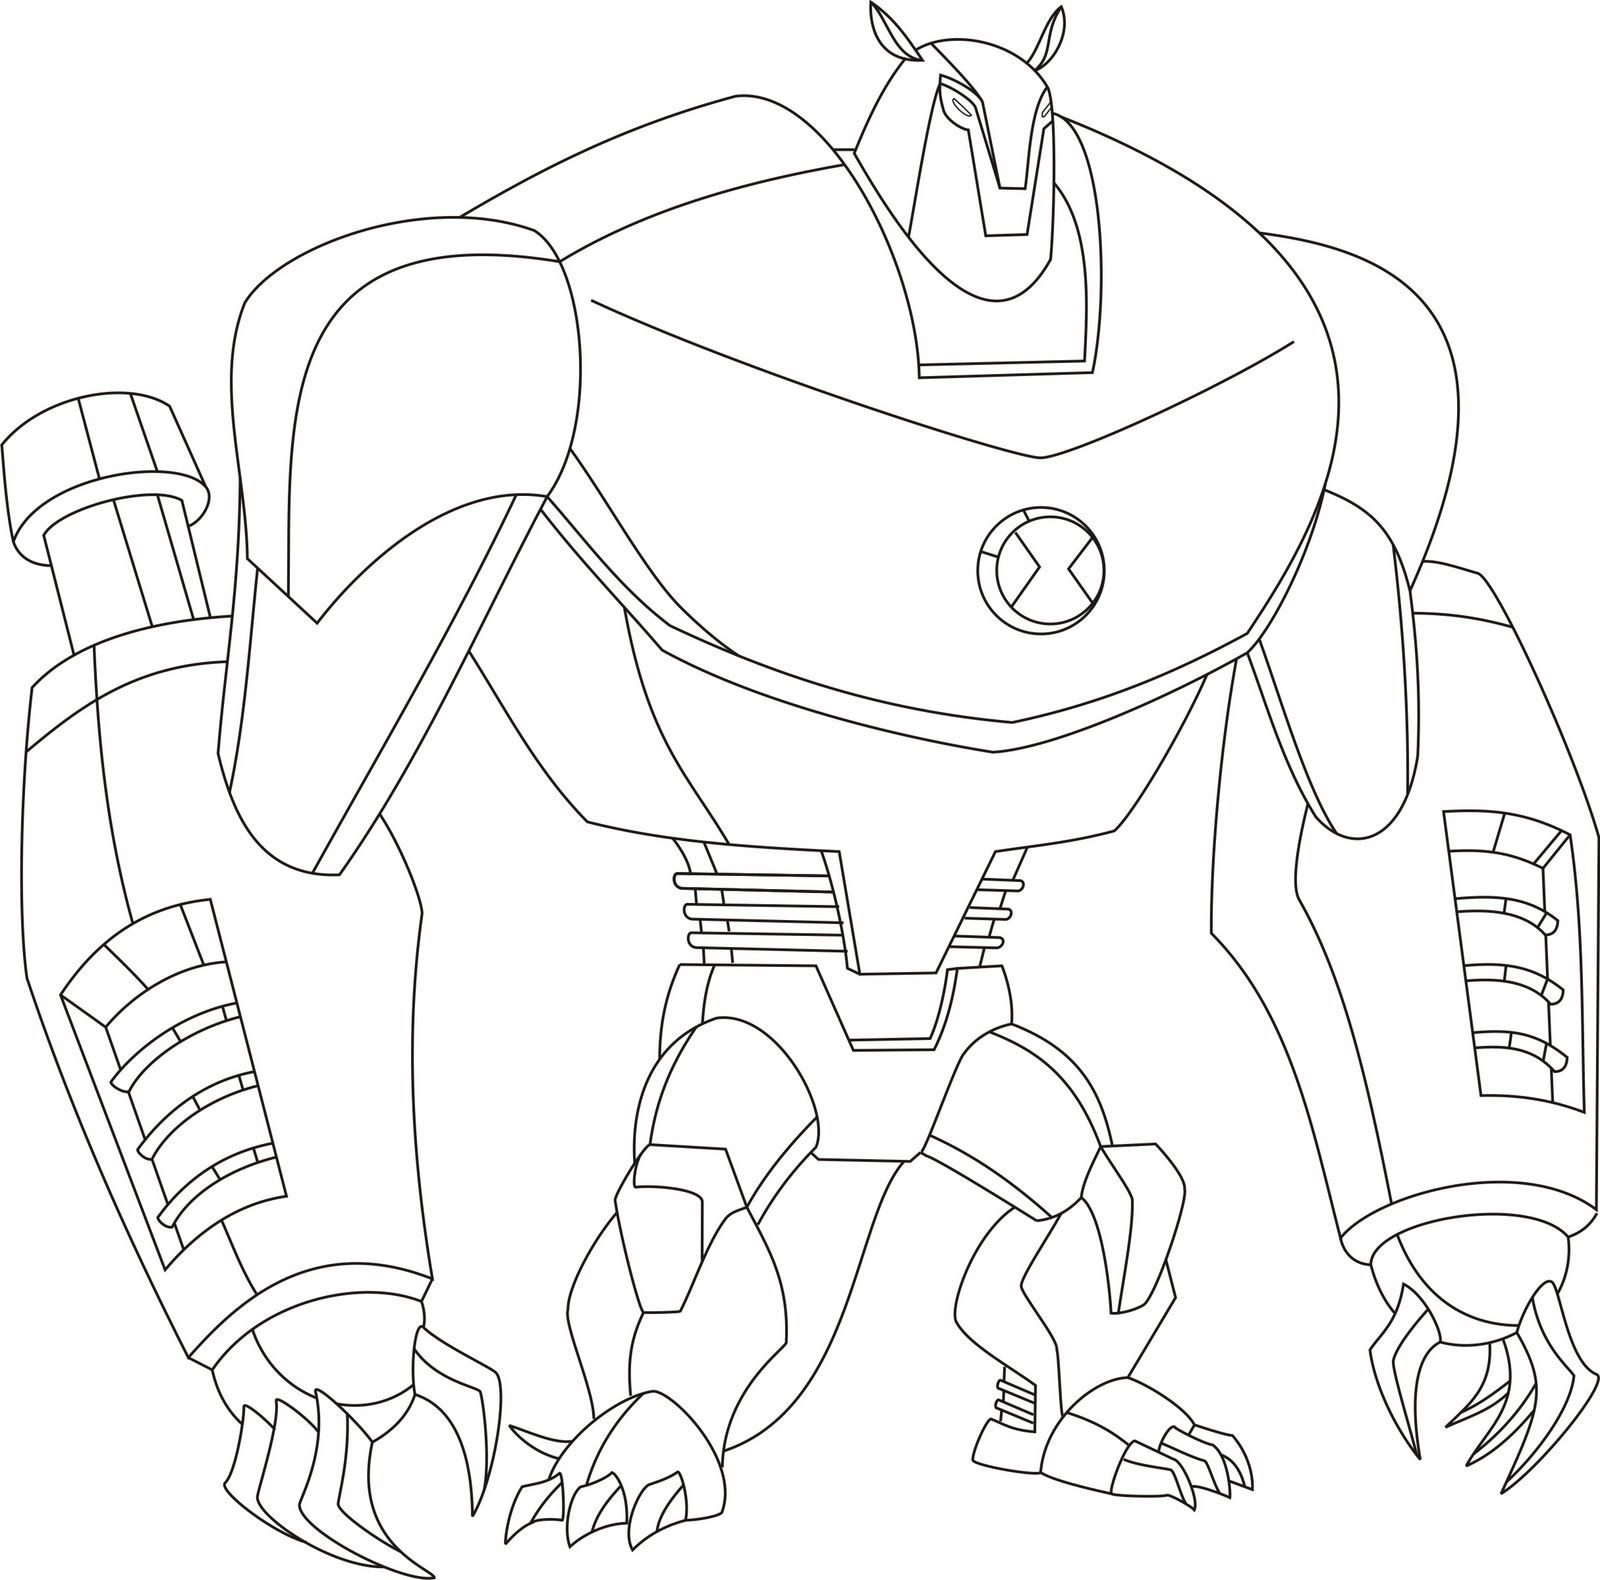 Free Printable Ben 10 Coloring Pages For Kids Bunny Coloring Pages Ben 10 Coloring Pages